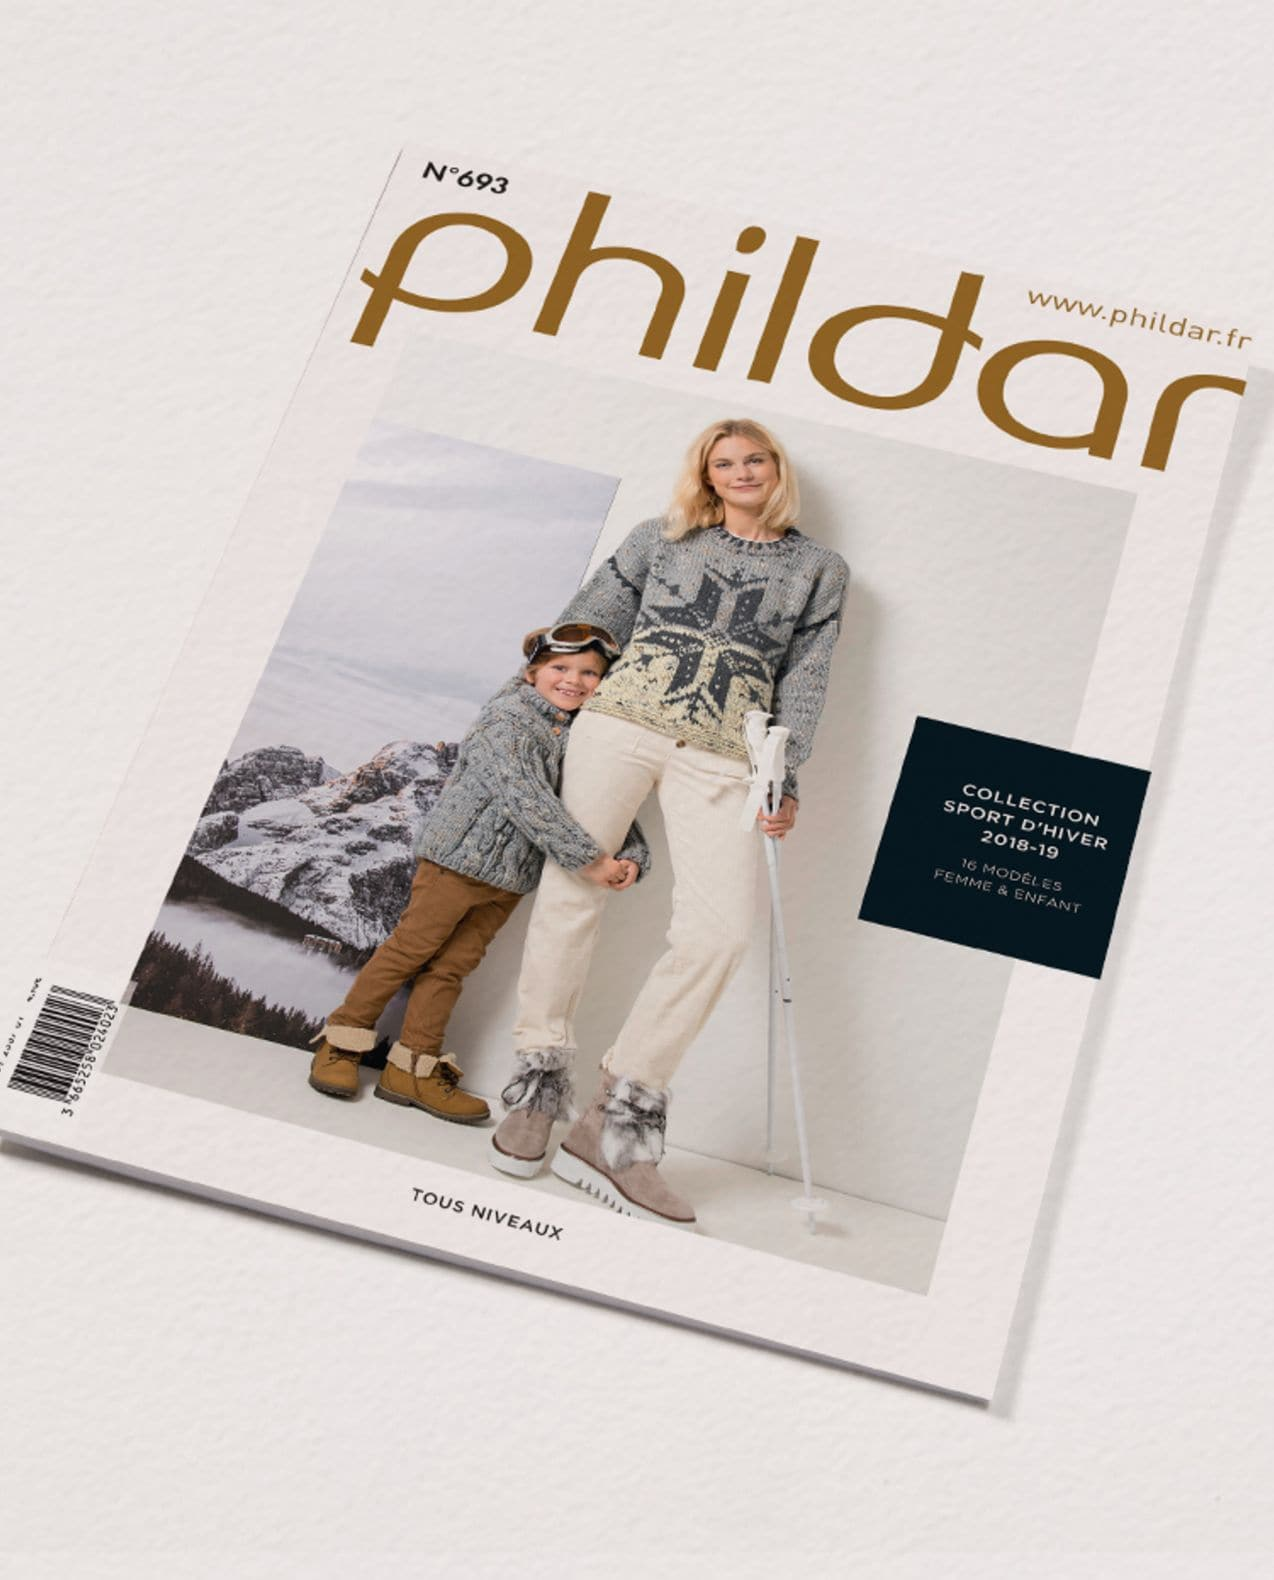 Catalogue n°693 : Sport d'hiver famille